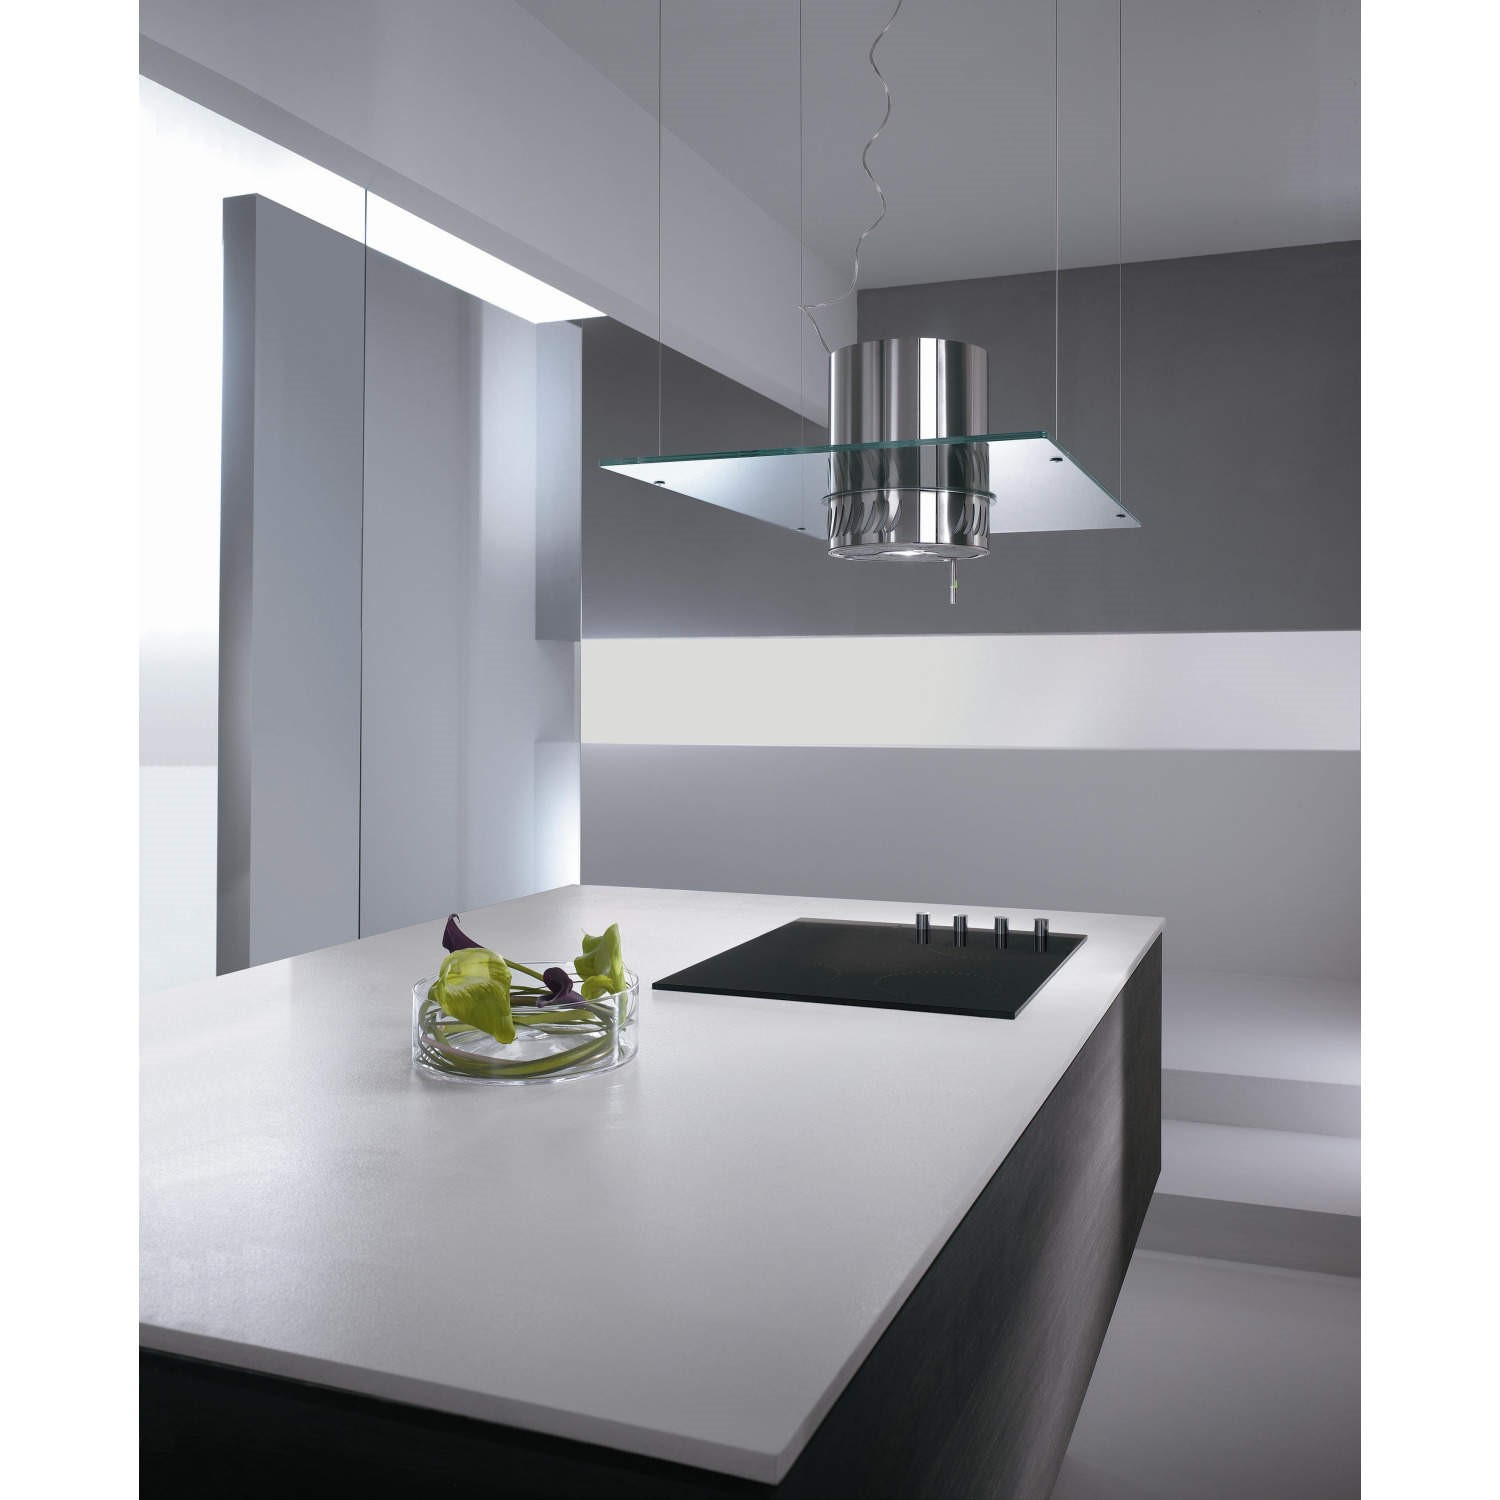 Elicia Cooker Hoods Elica Venezia 90Cm Stainless Steel Ceiling Mounted Island Cooker .